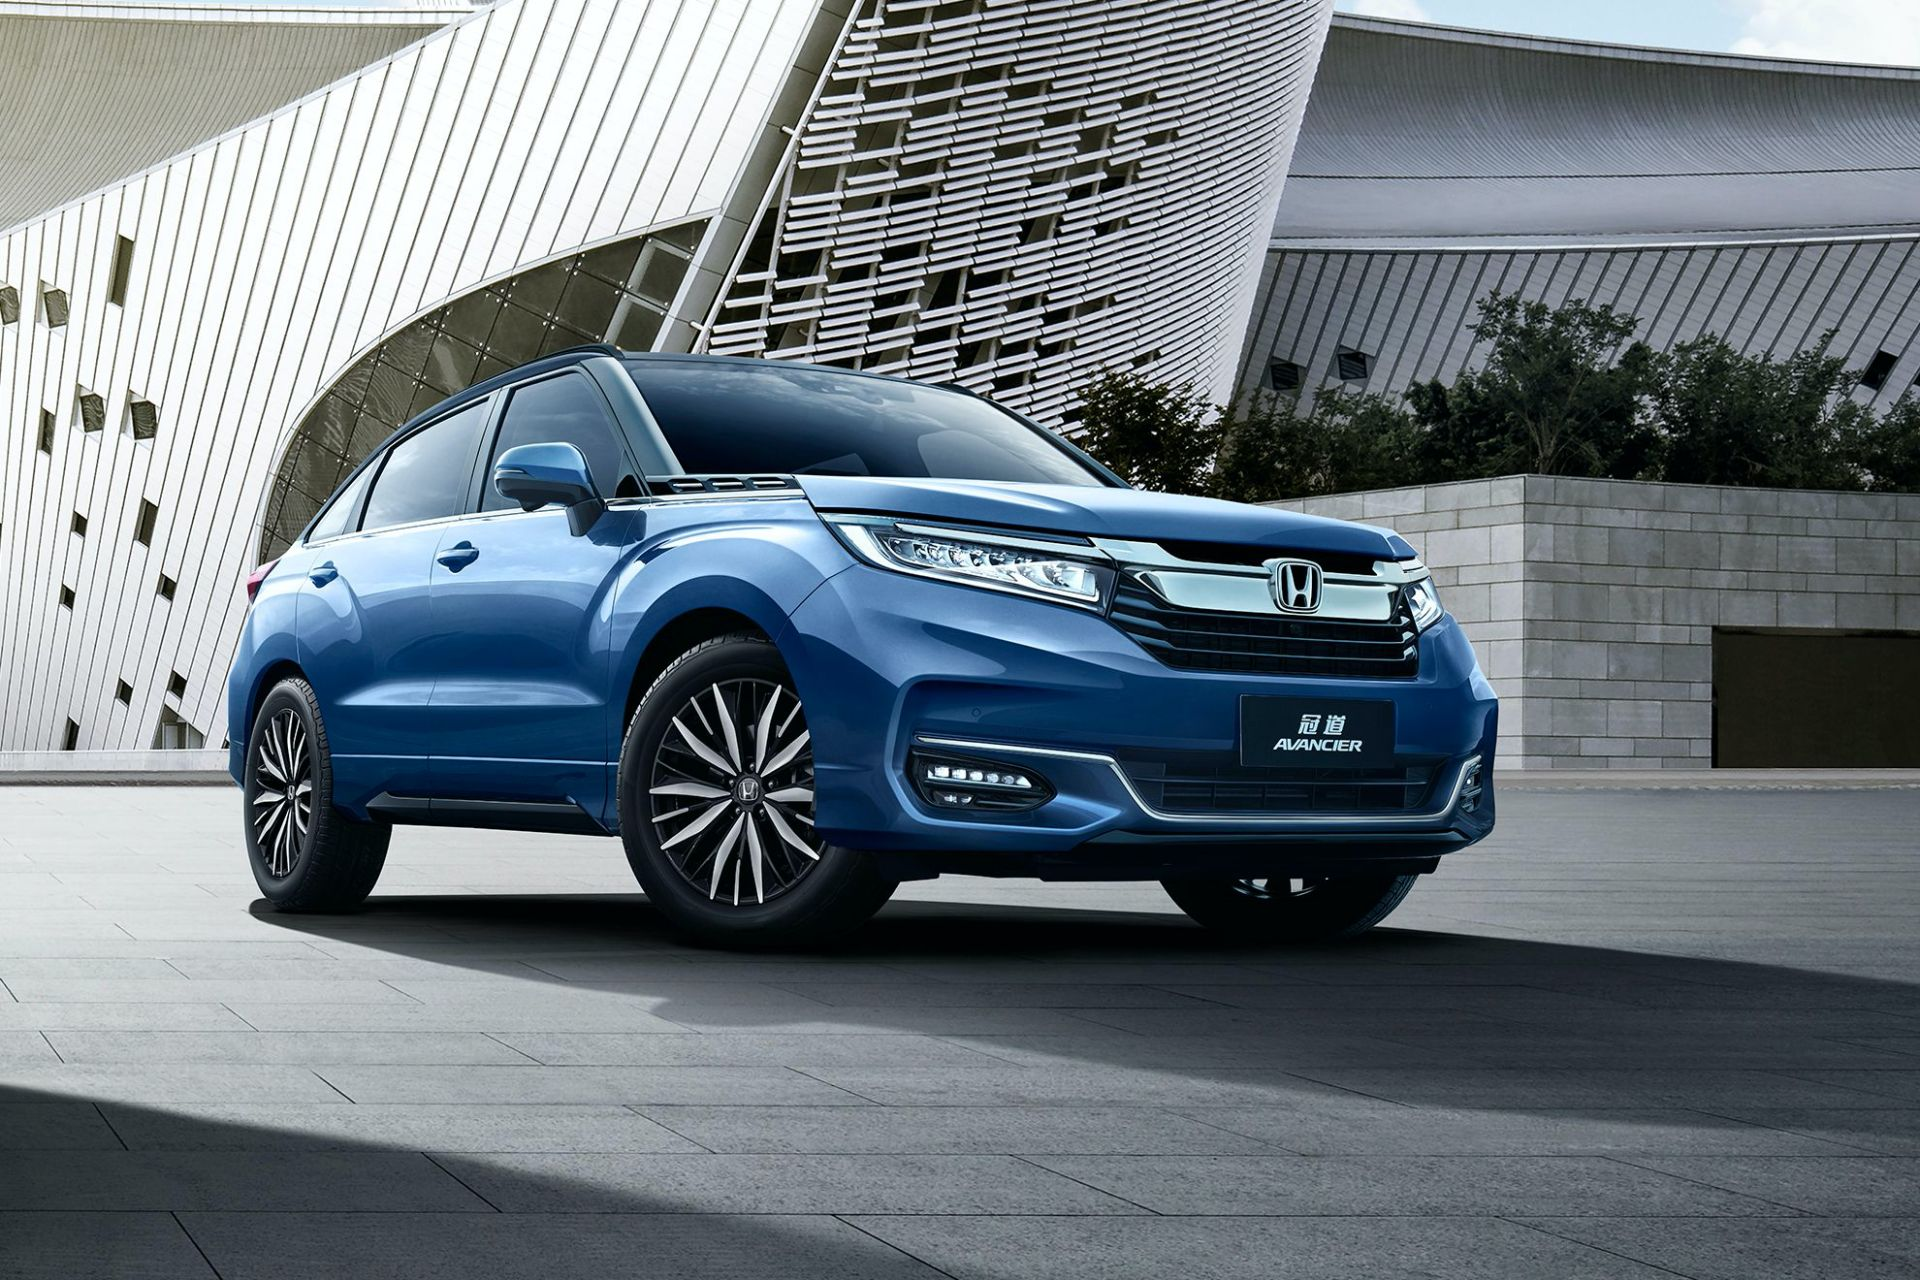 Honda-Avancier-facelift-2020-9